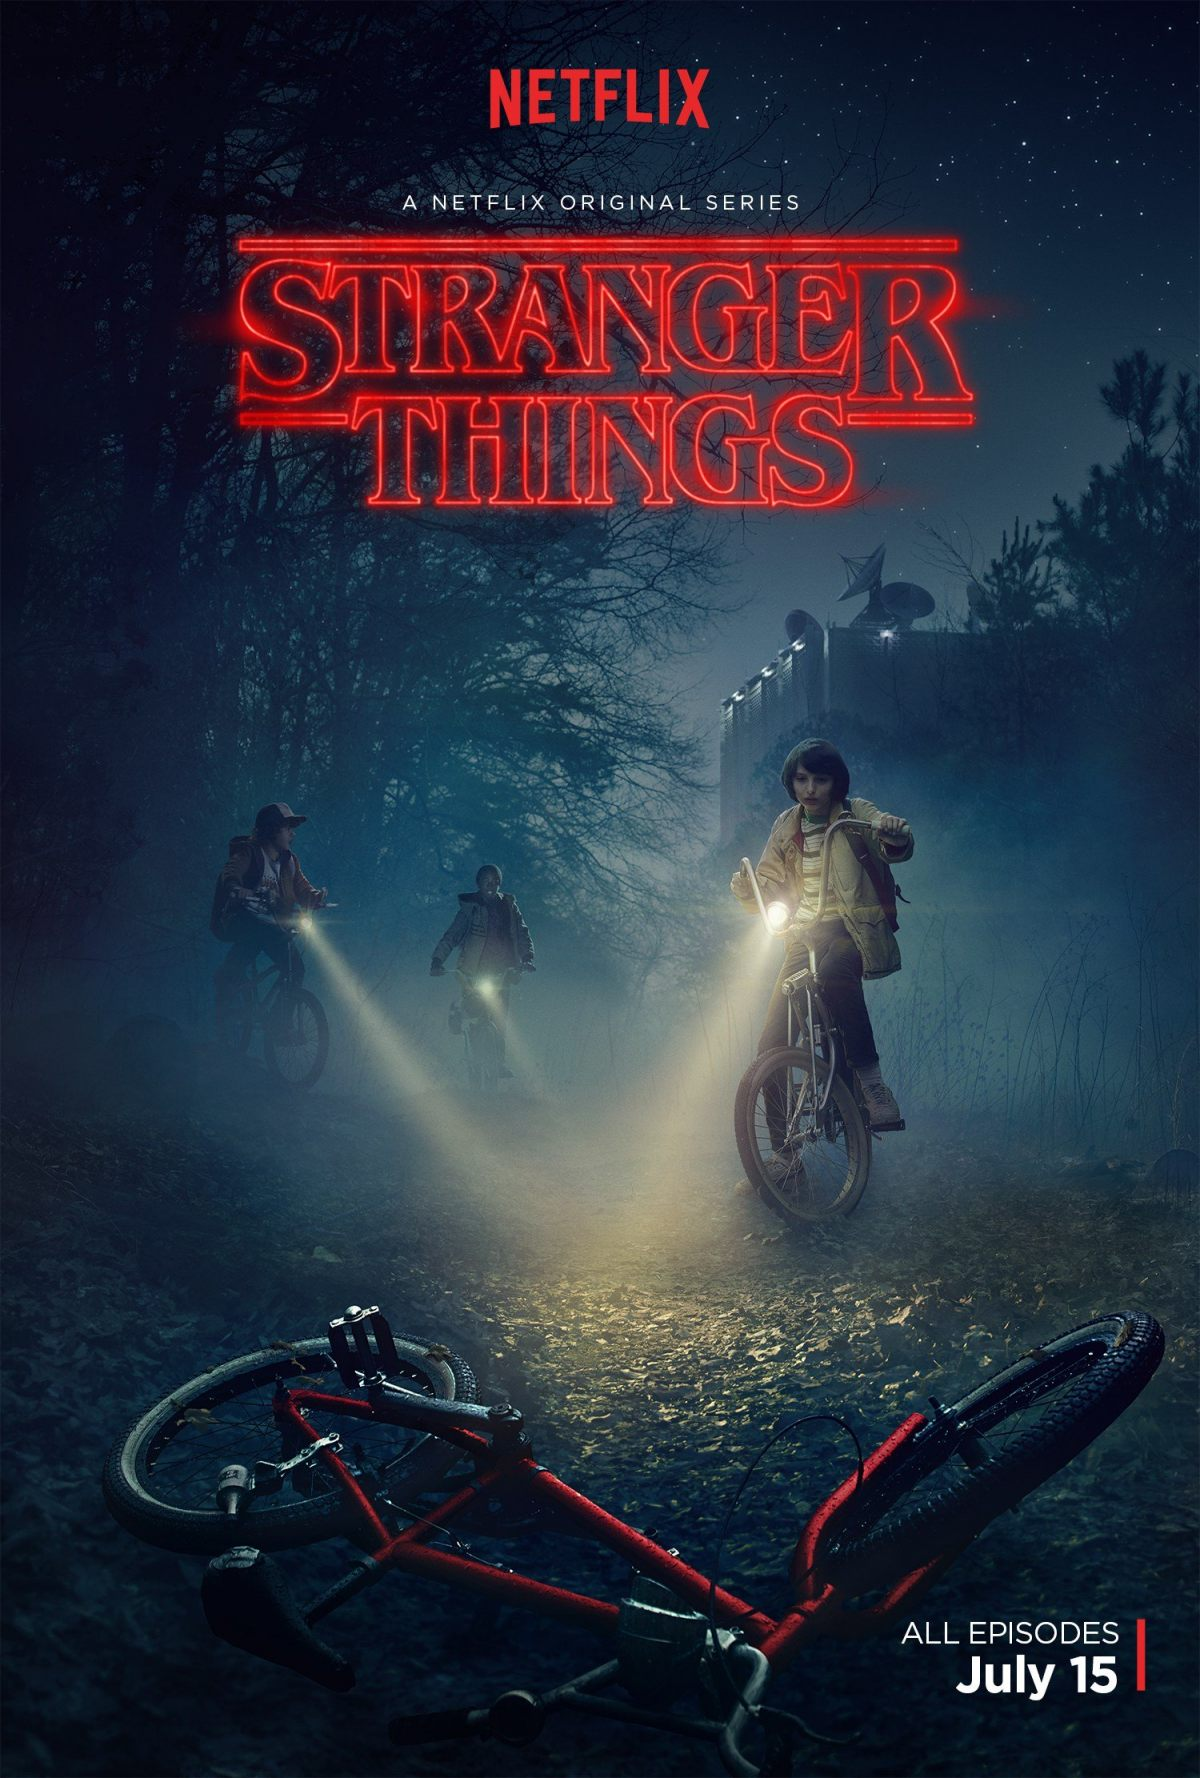 http://s3.birthmoviesdeath.com/images/made/stranger-things-poster_1200_1778_81_s.jpg